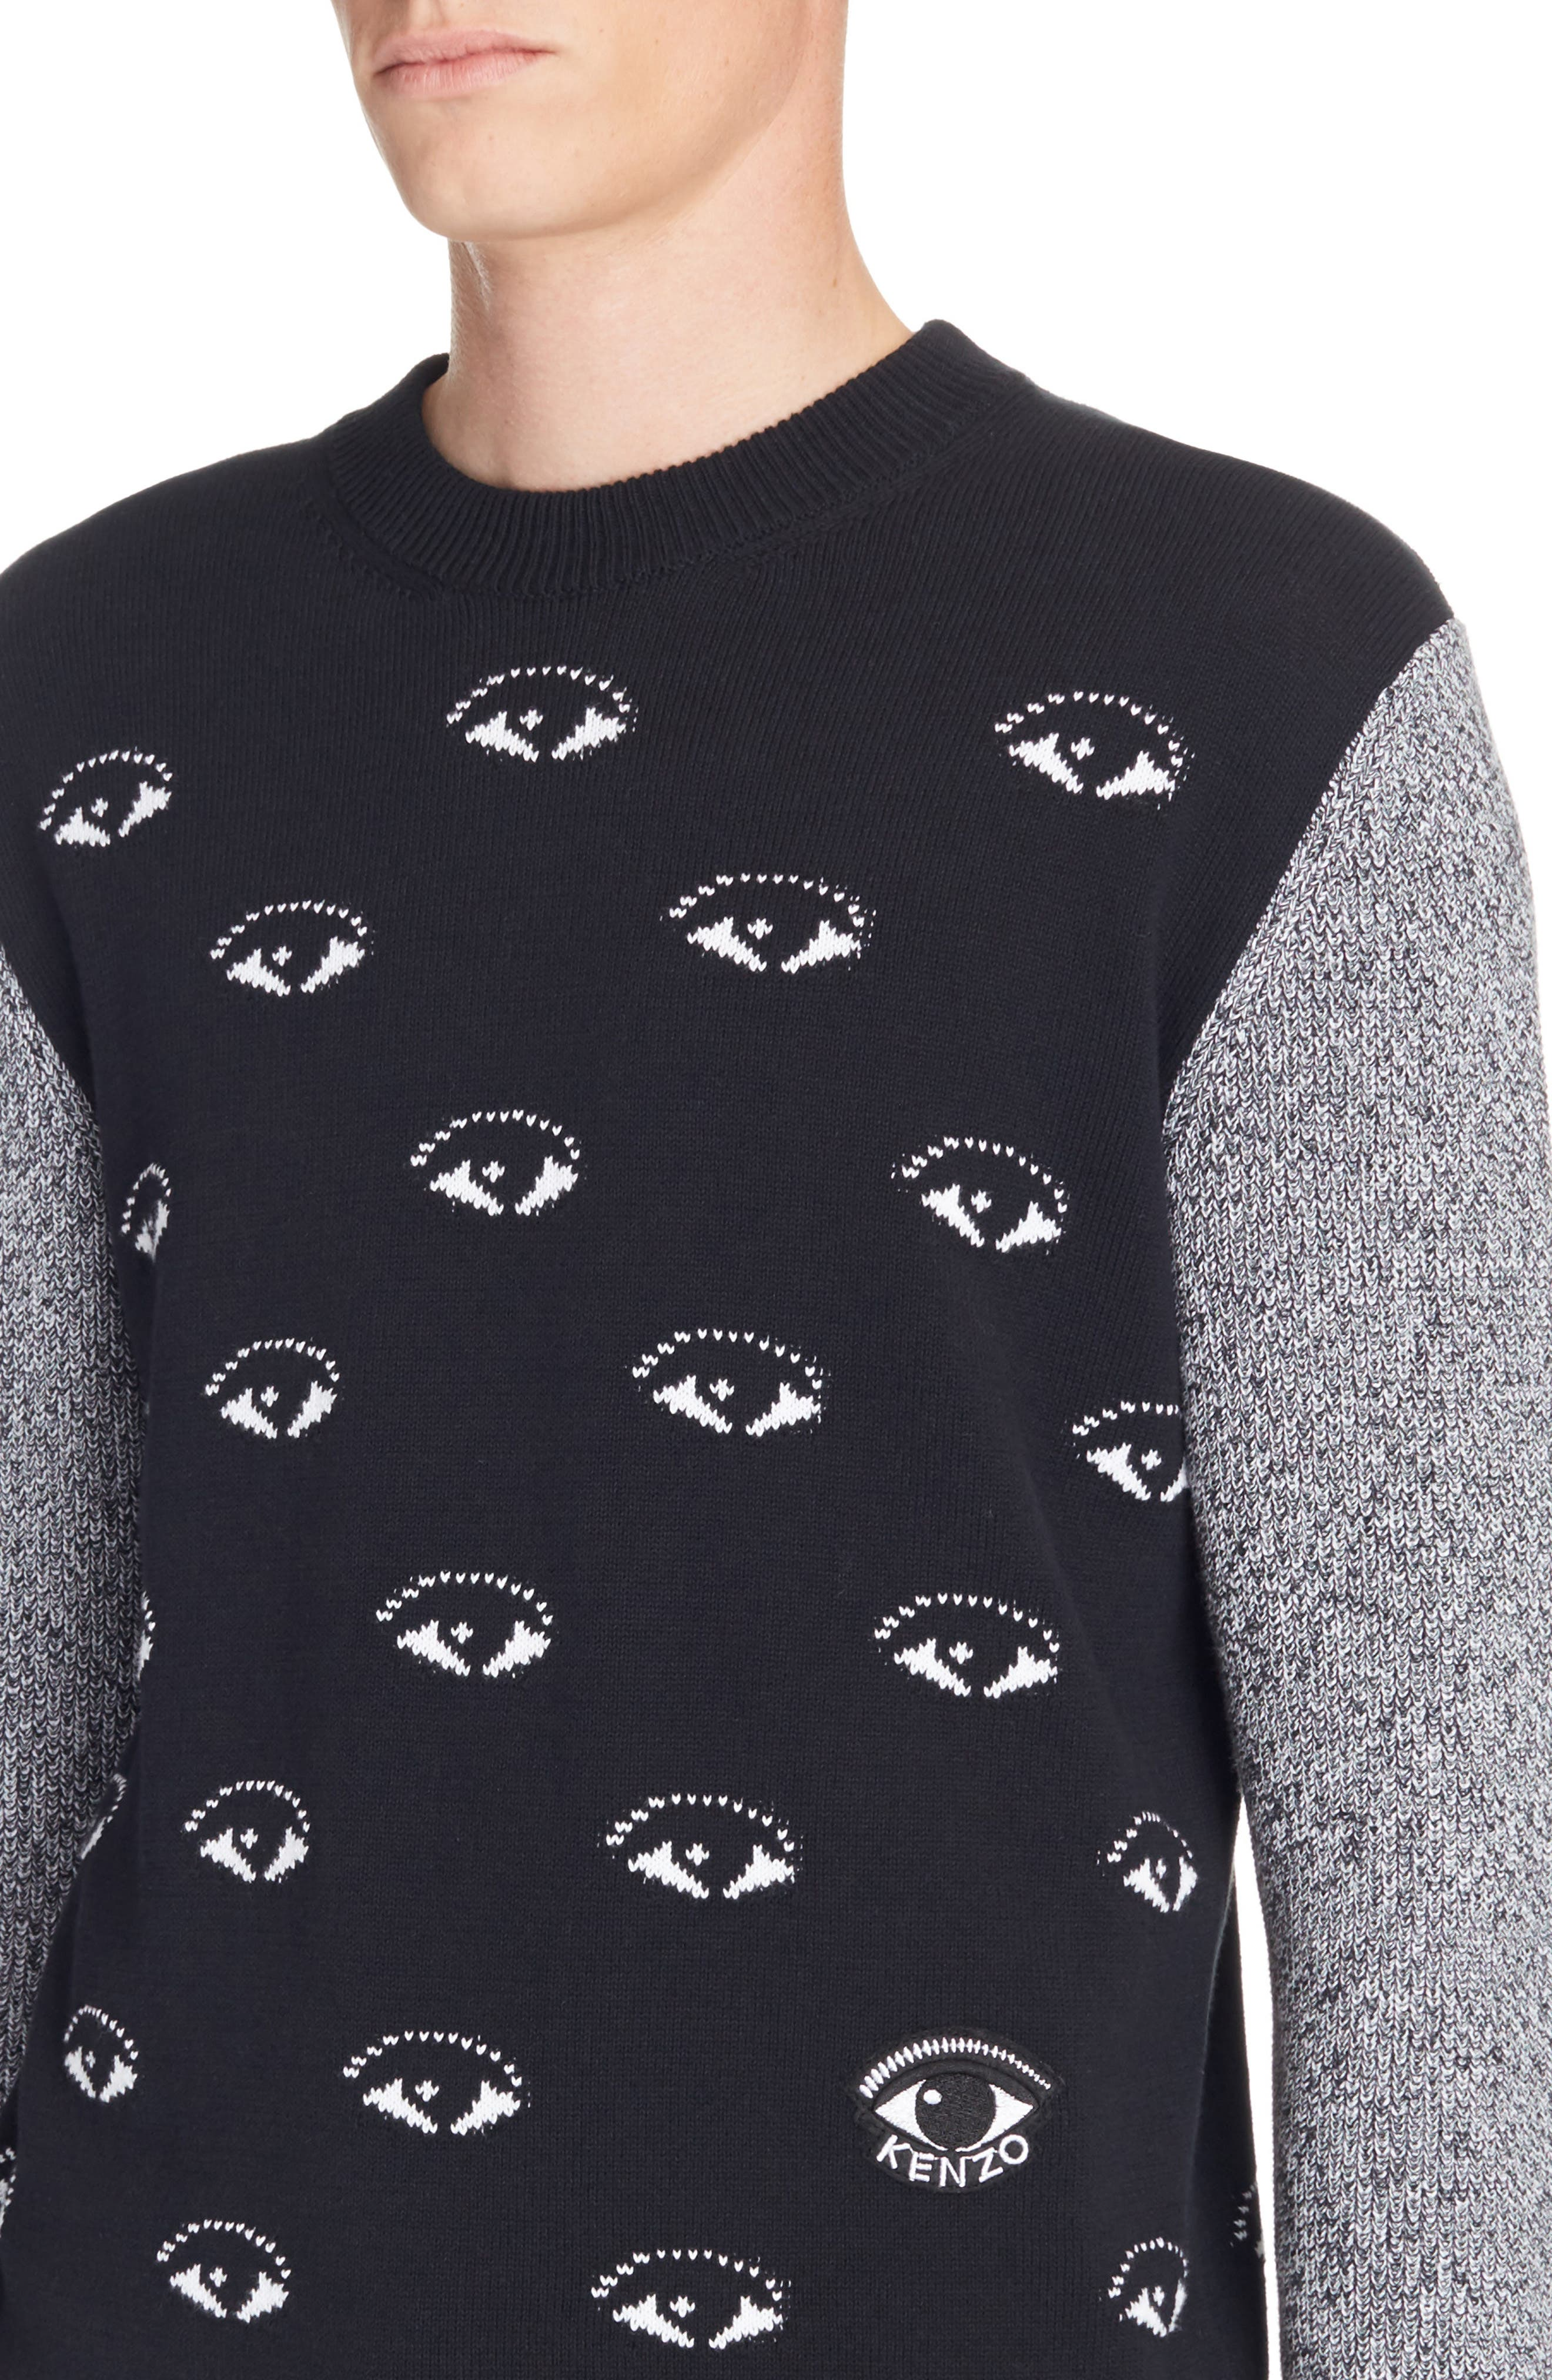 All Eyes Print Crewneck Sweater,                             Alternate thumbnail 4, color,                             Black